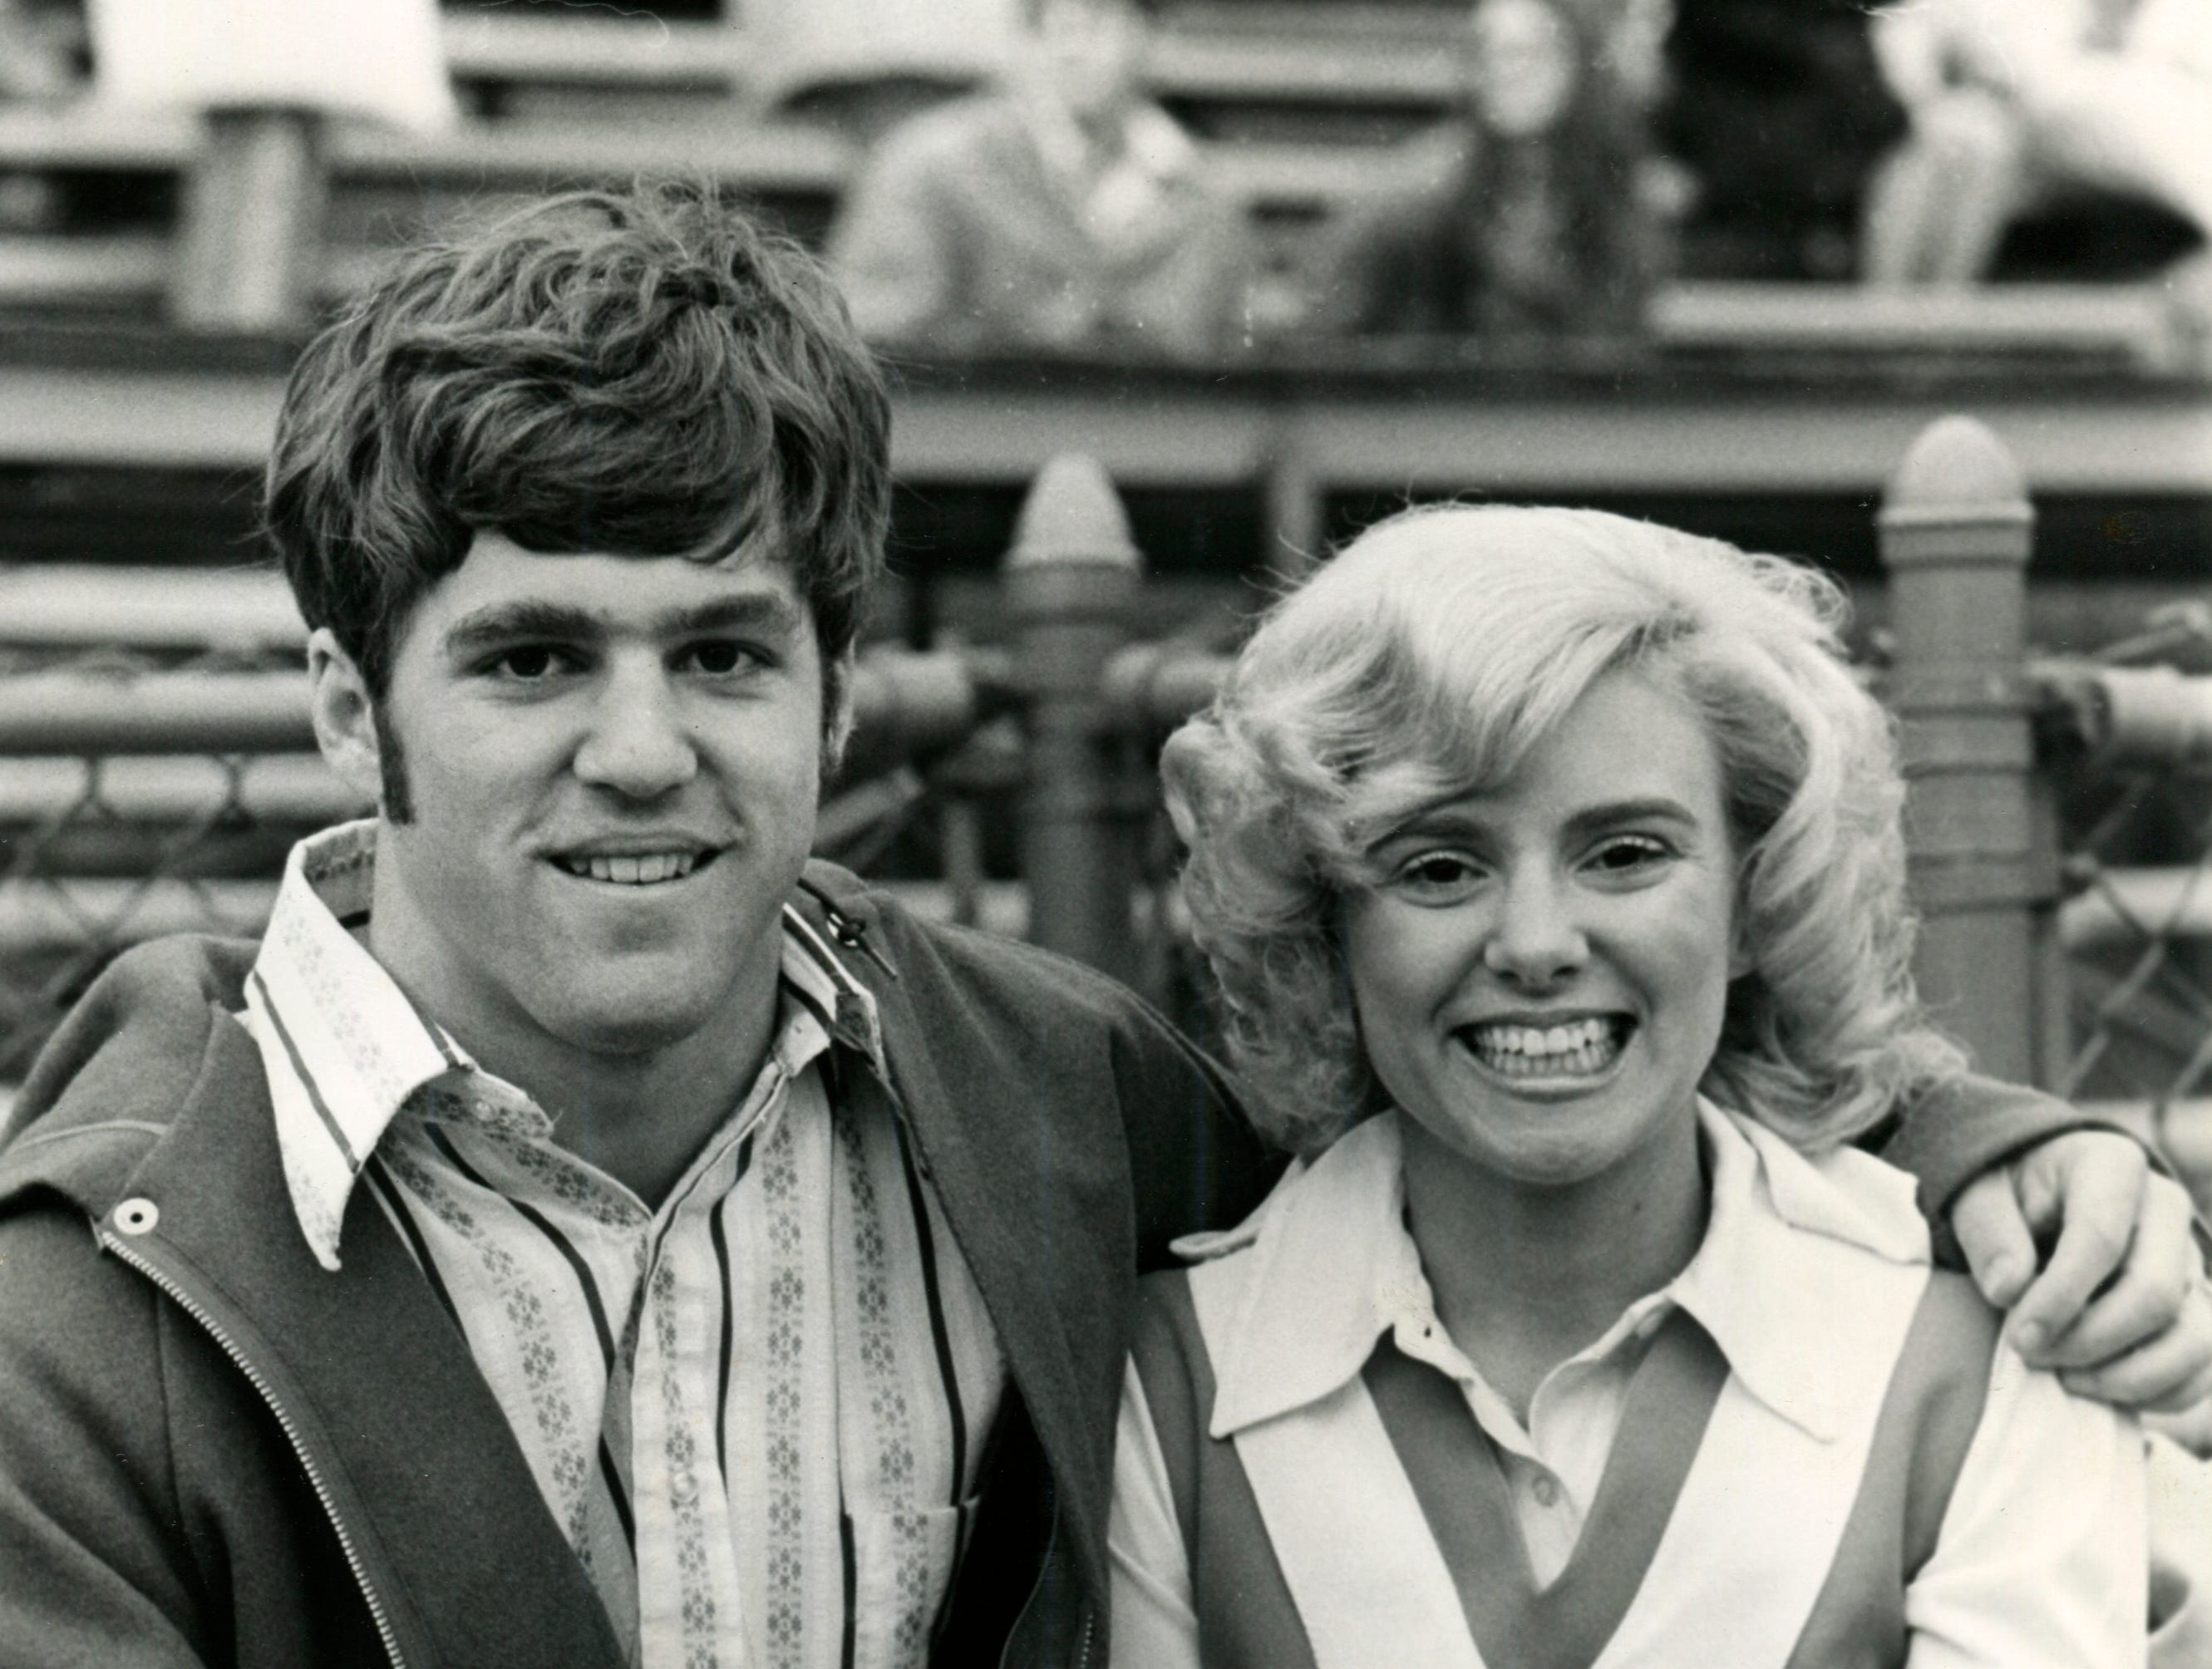 A photo published Nov. 28, 1971, Tennessee cheerleader Pat Green visits with high school football prospect Hank Lauricella Jr. during the Vanderbilt game. Lauricella's father was an All-American tailback for Tennessee in 1951.